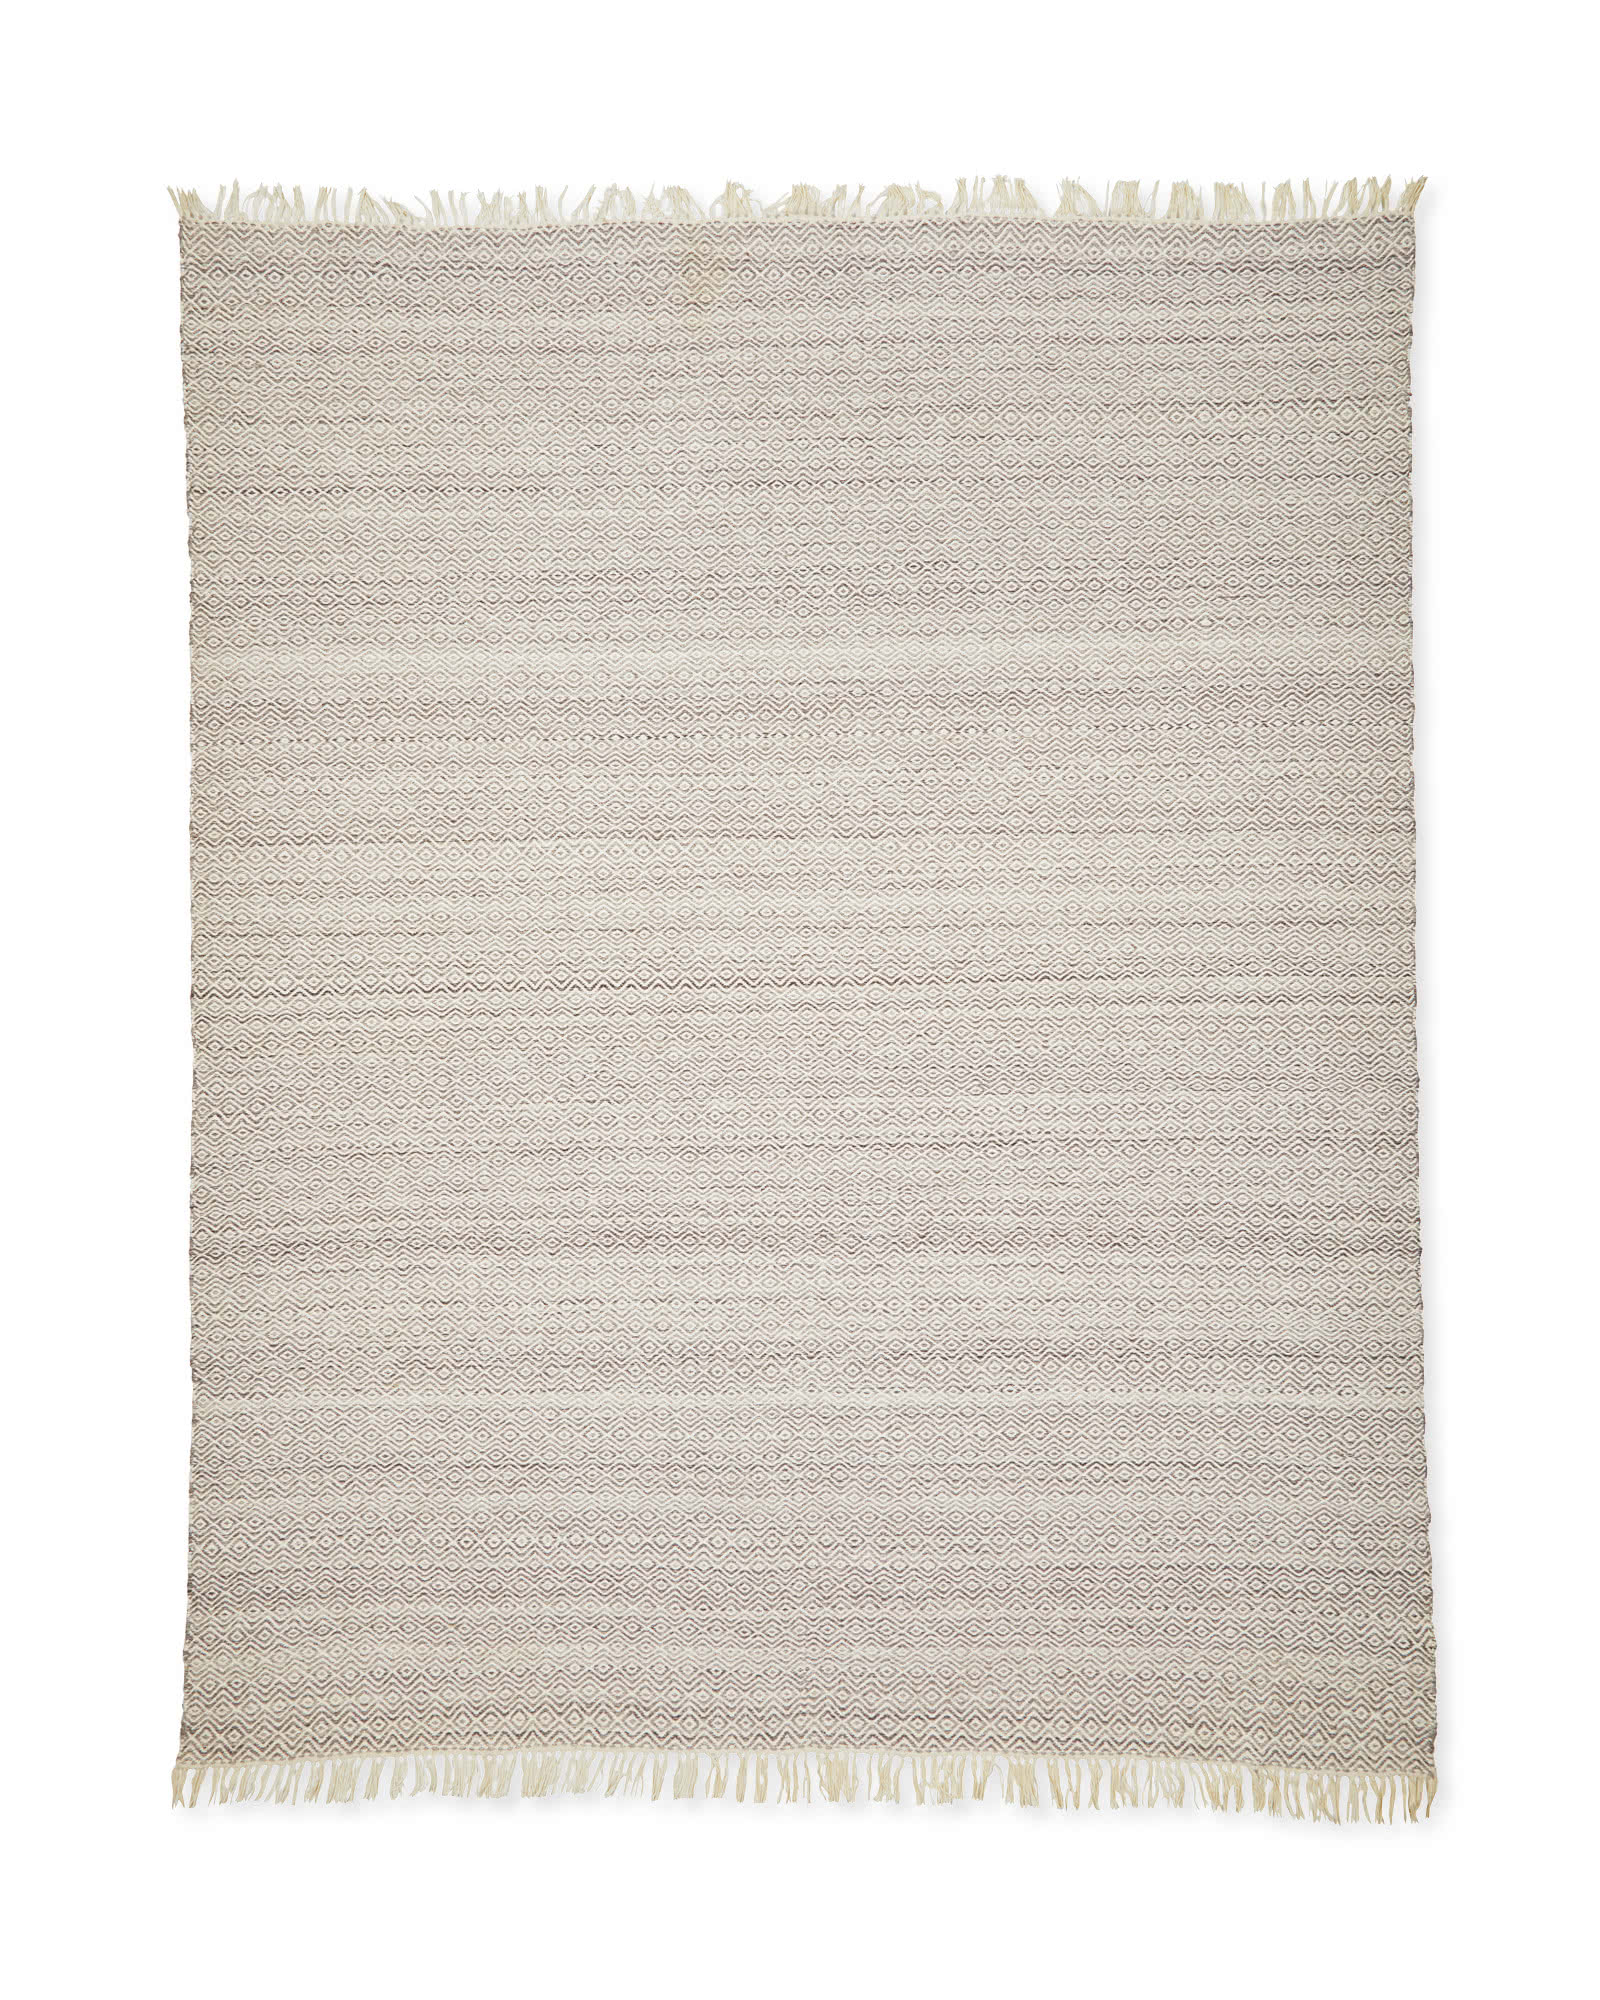 Seaview Outdoor Rug, Earth